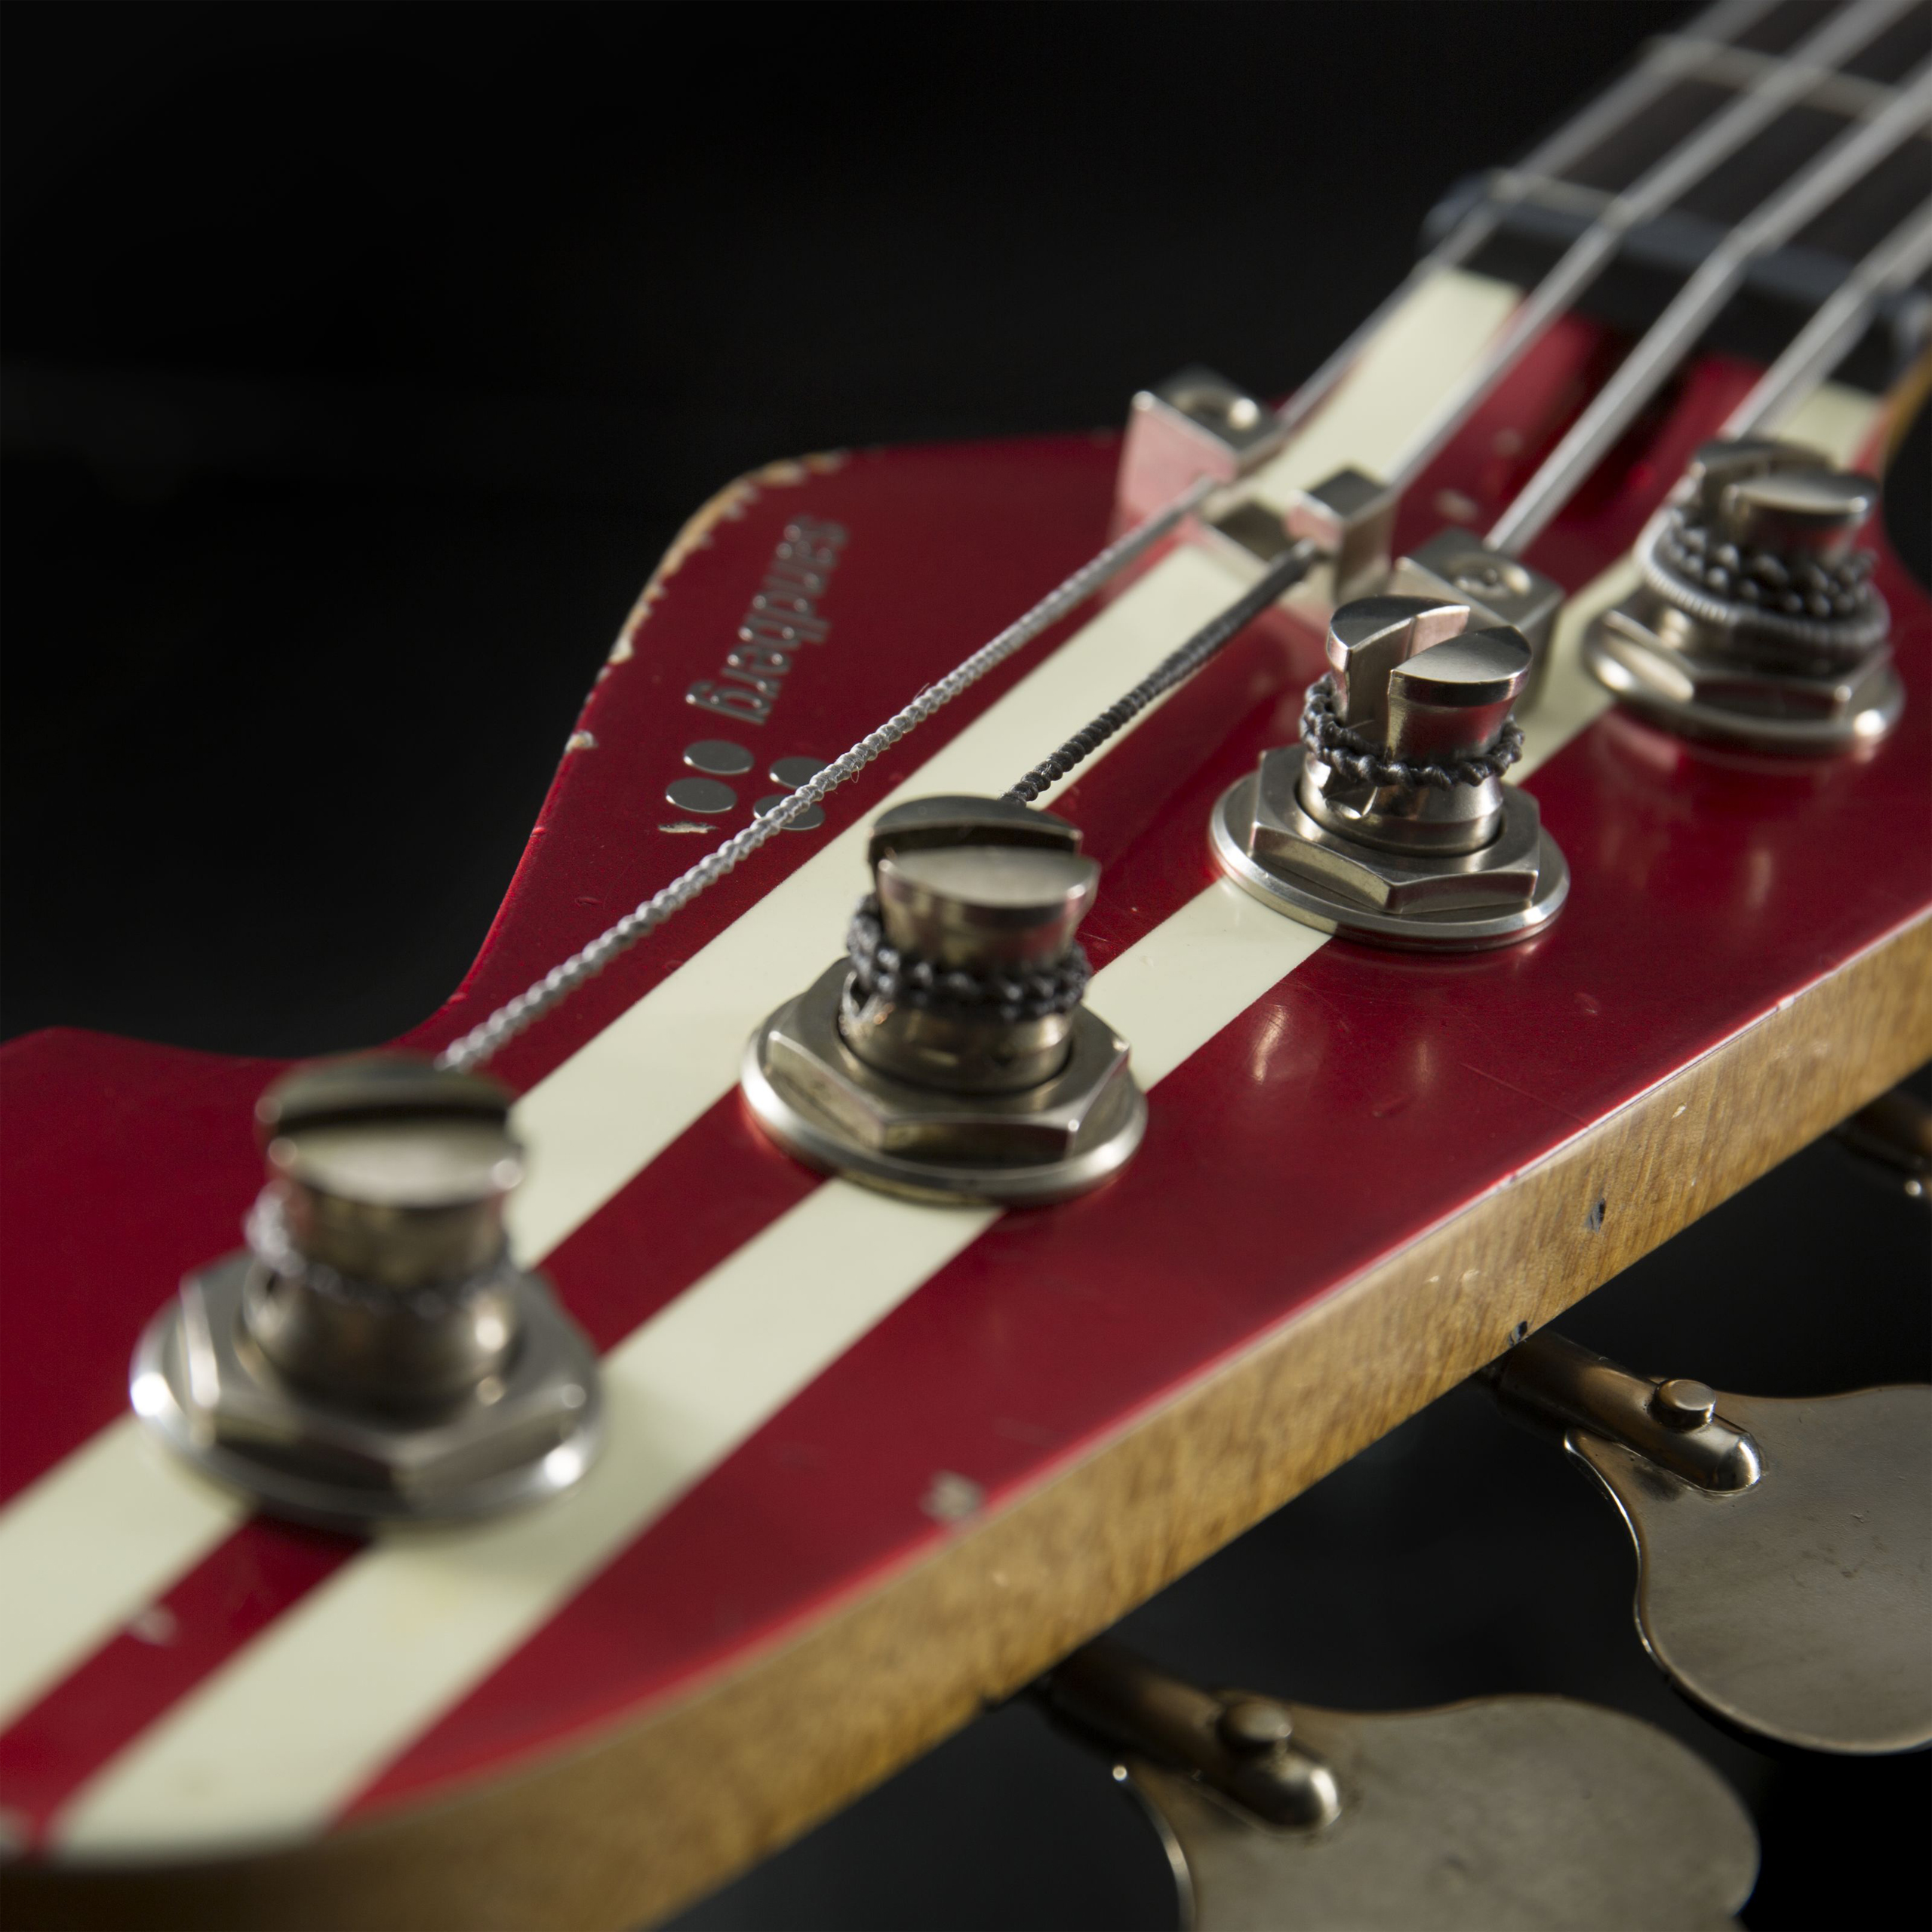 Sandberg Forty Eight 4 RW Metallic Red w/ Matching Headstock Hardcore Aged Kopfplatte